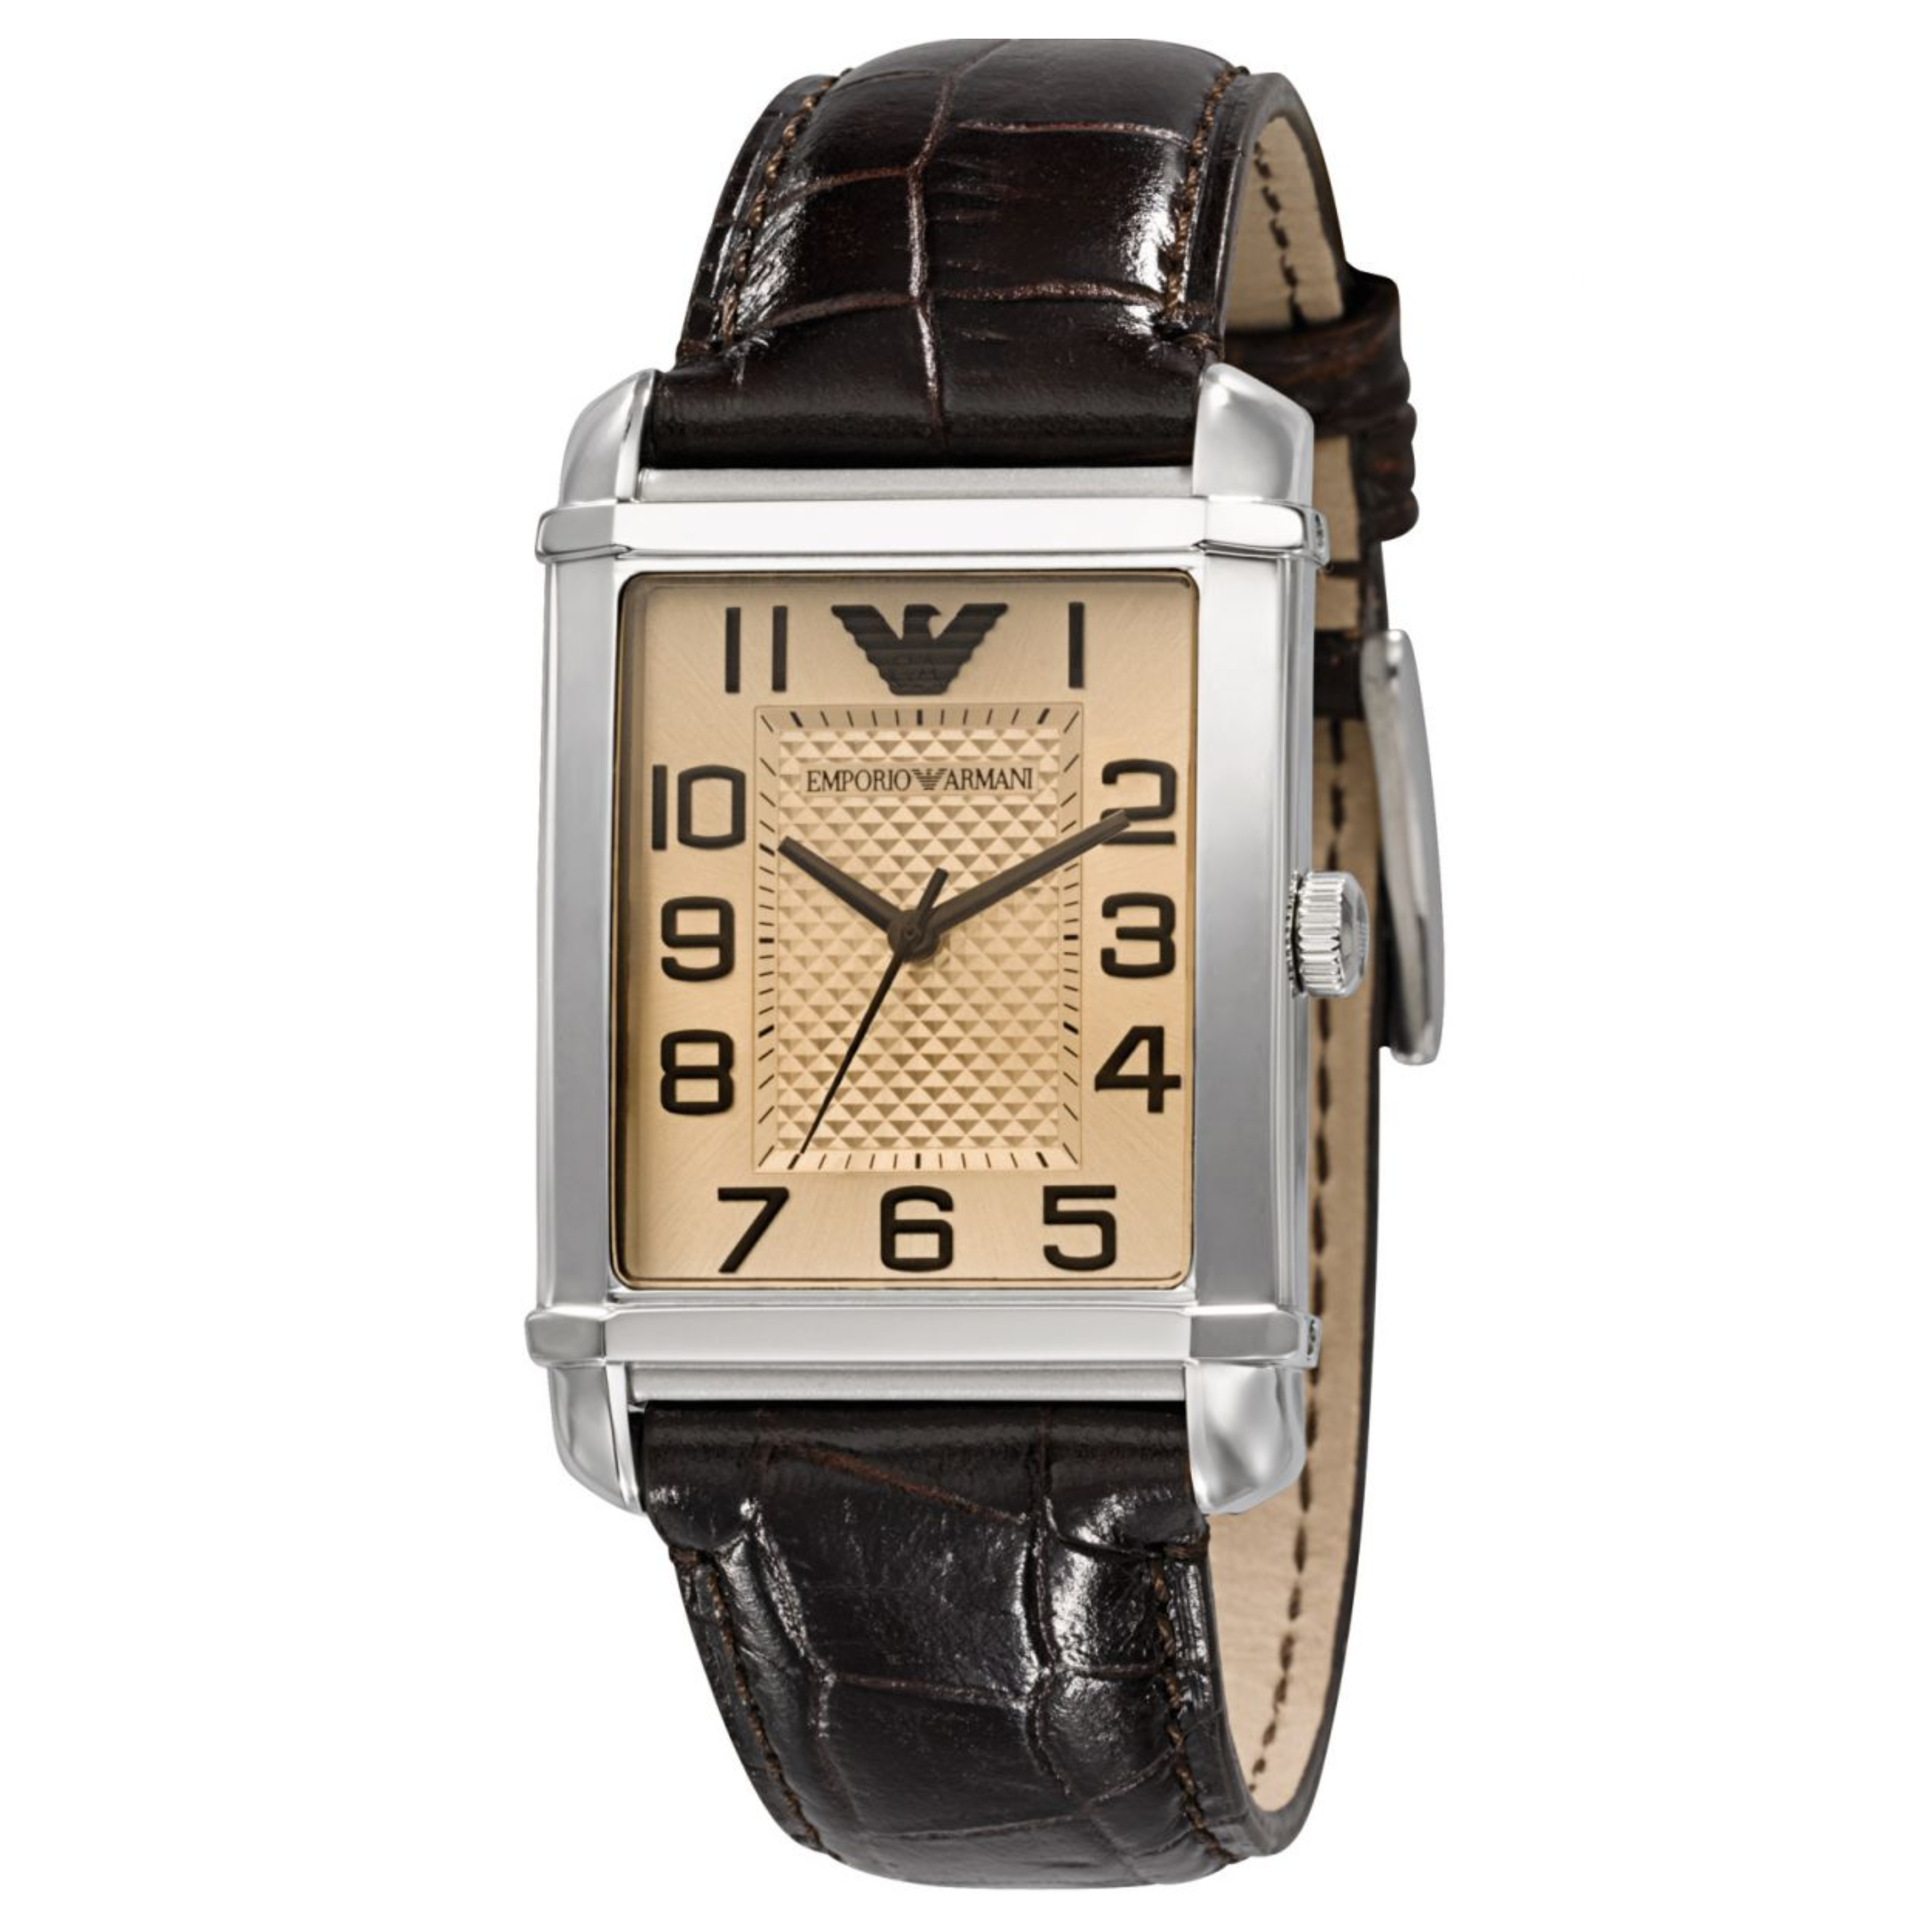 Emporio Armani Women's Analog Watch Rectangle Dial Brown Leather Strap AR0491